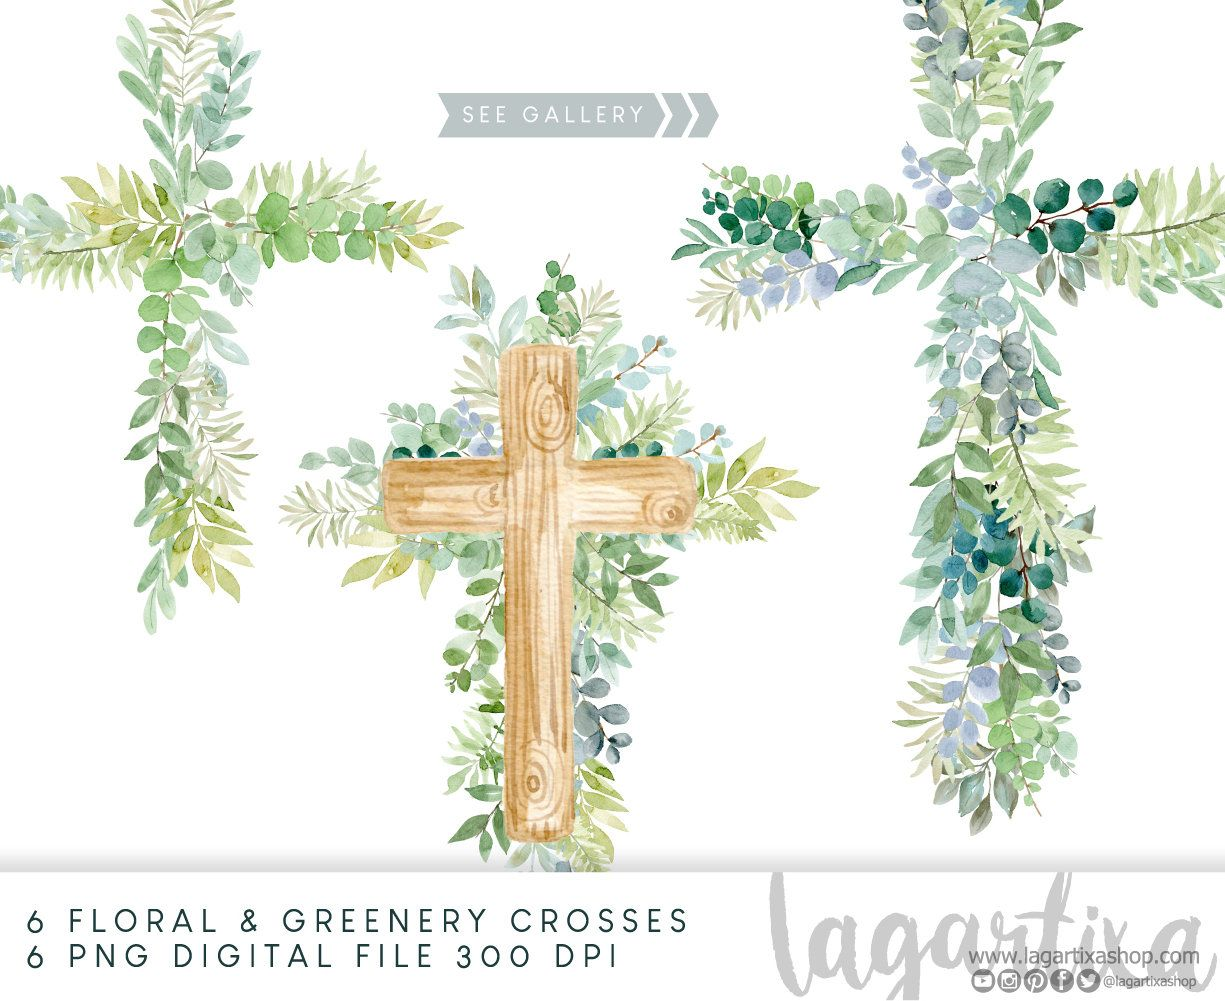 Greenery Crosses Green Leaves Watercolor Clipart Wood Cross Leaf With Floral Arrangements For Modern Wedding Invitations Hand Painted In 2021 Cross Paintings Wood Crosses Watercolor Clipart